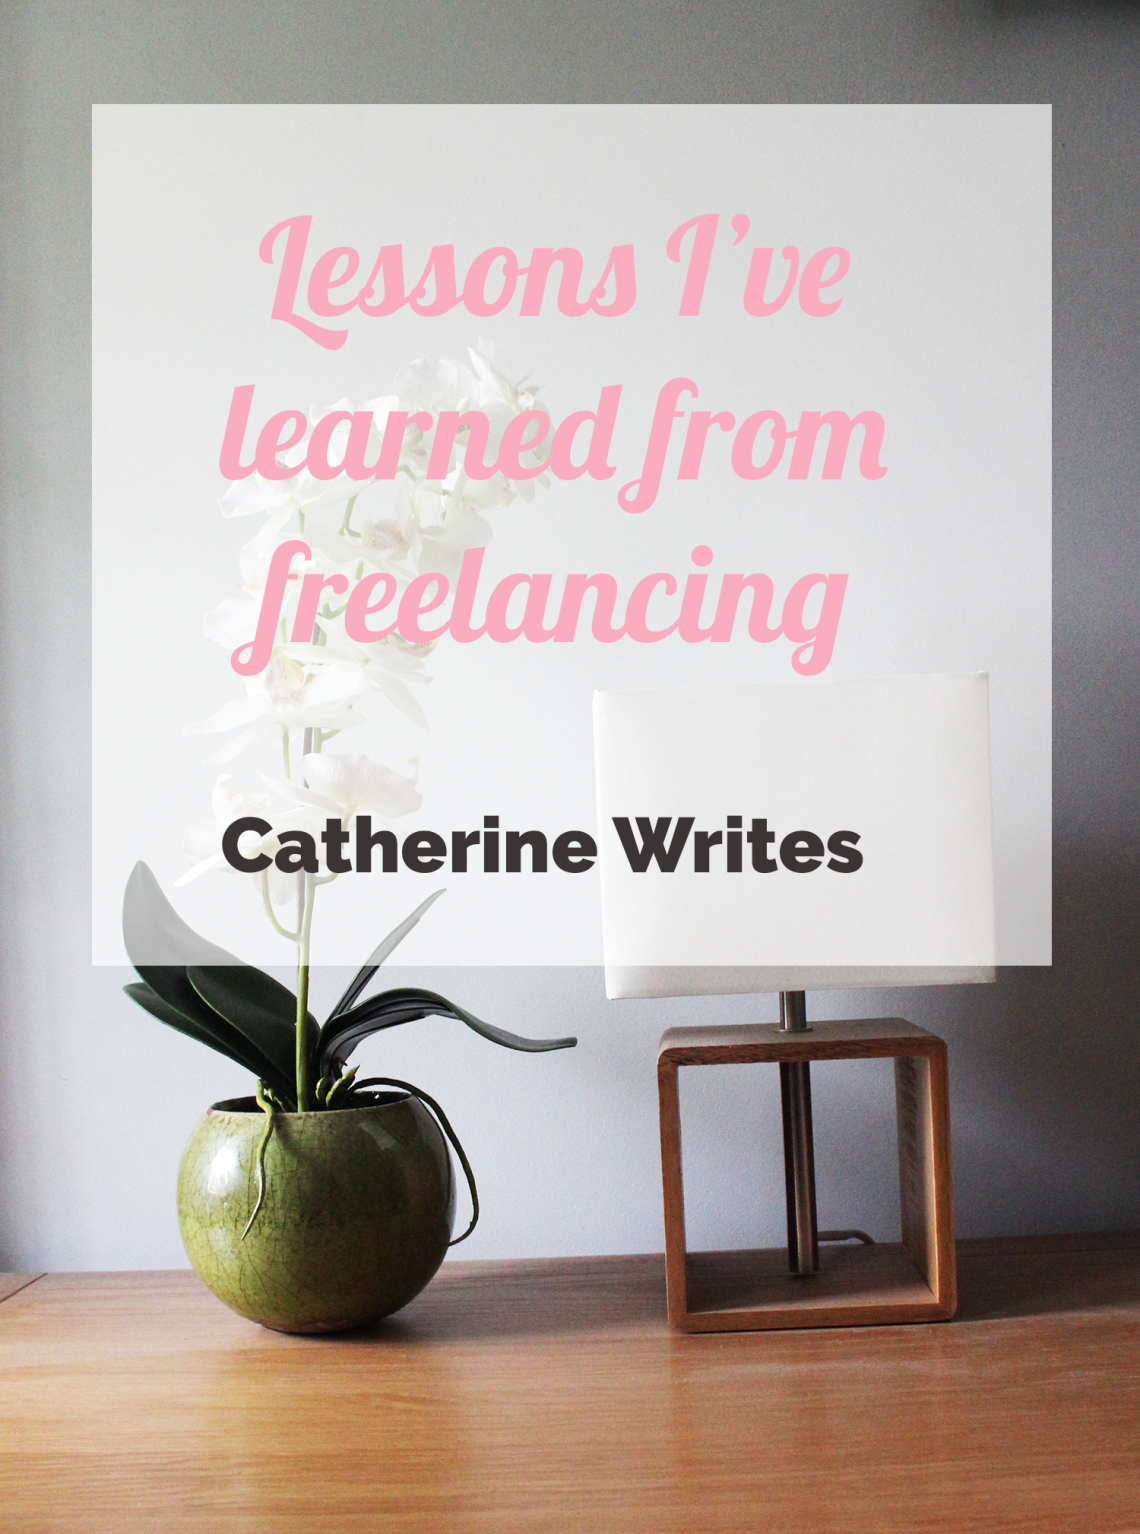 lessons-from-freelancing